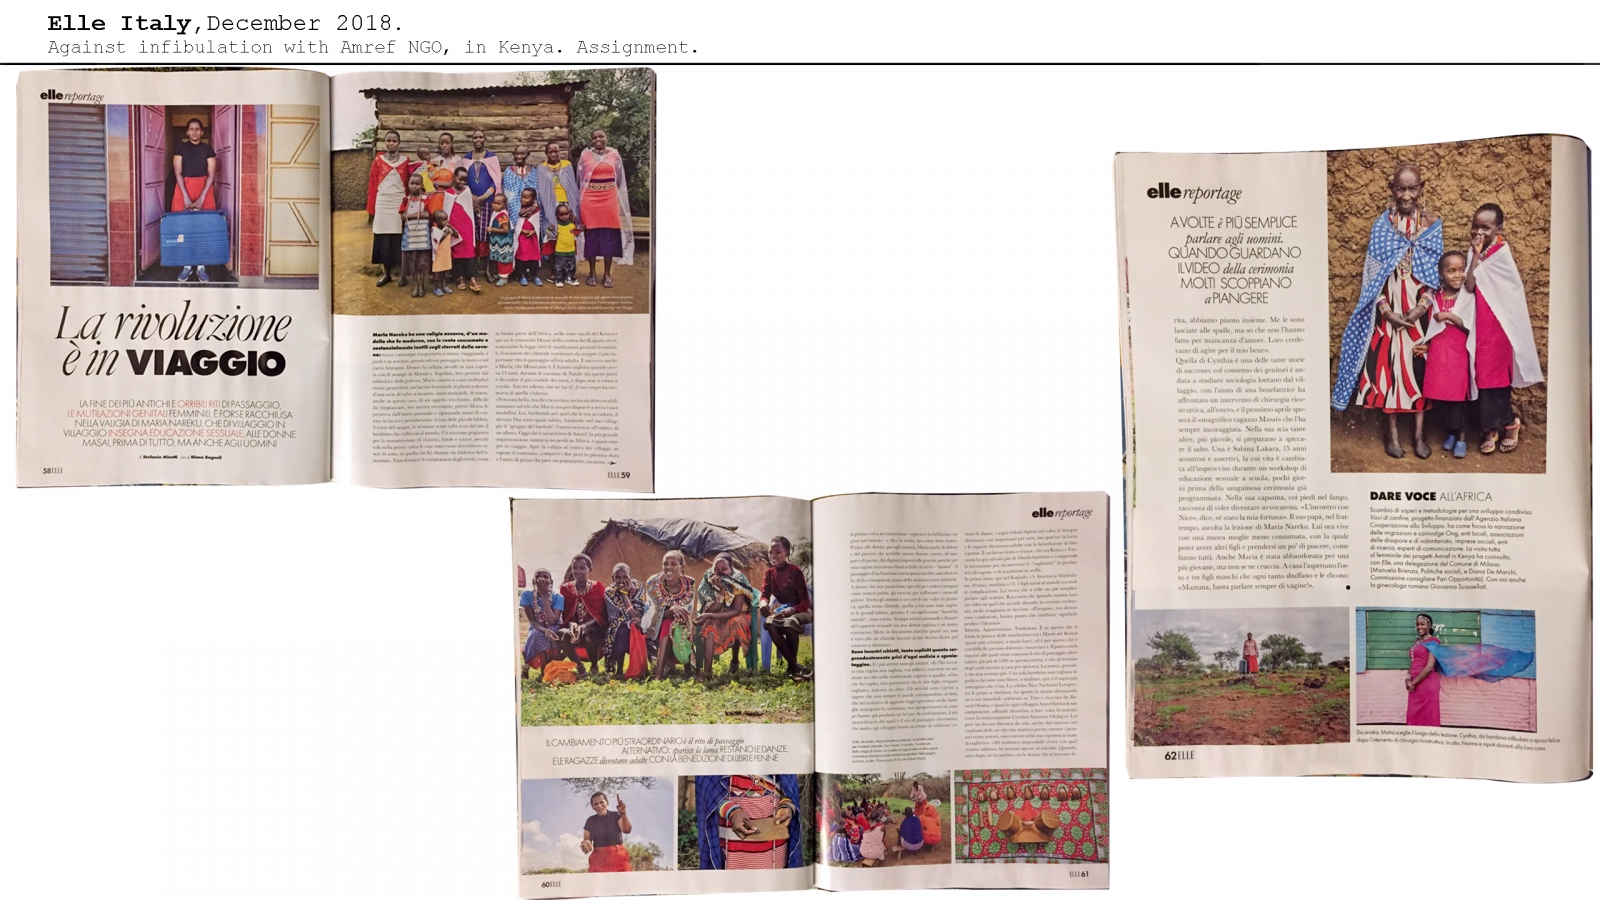 Elle Magazine. January 2019. The story of Maria and the blue suitcase, sexual education in Masai villages with the NGO Amref